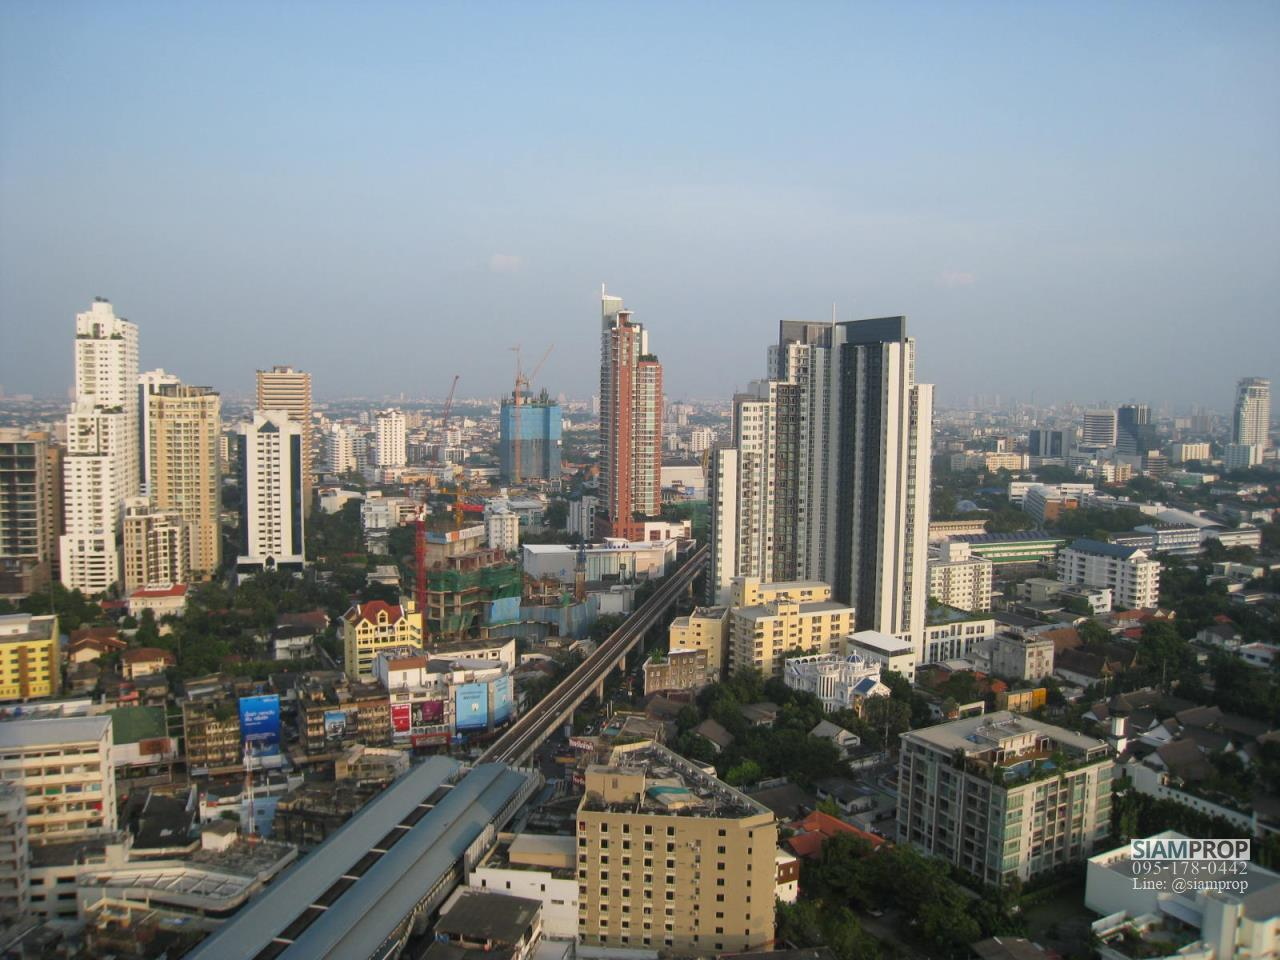 Siam Prop Agency's Noble Remix Sukhumvit 36, 2-BR Condo For with Beautiful Panoramic East View - 27th Fl., 60,000 THB/month 7